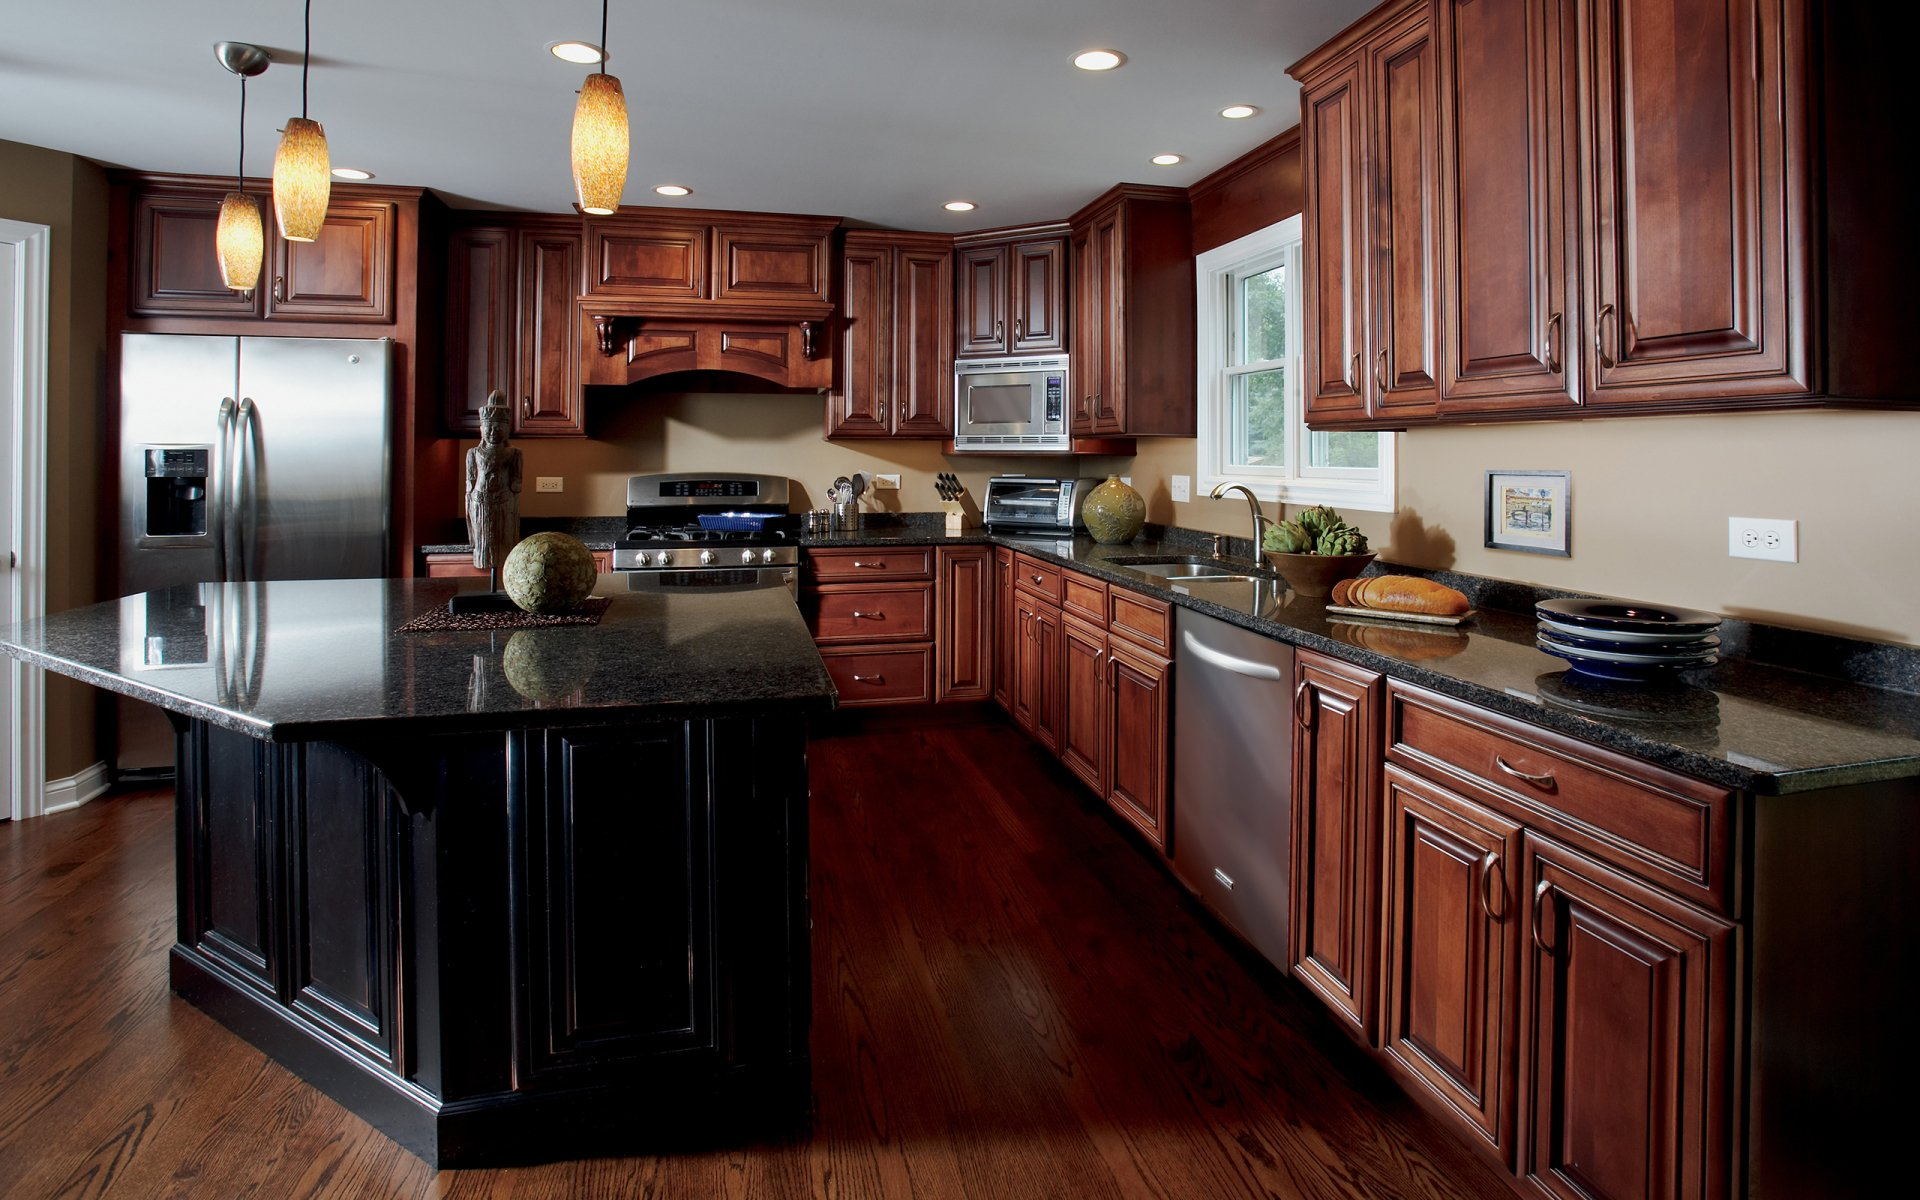 Countertops And Stone Surfaces